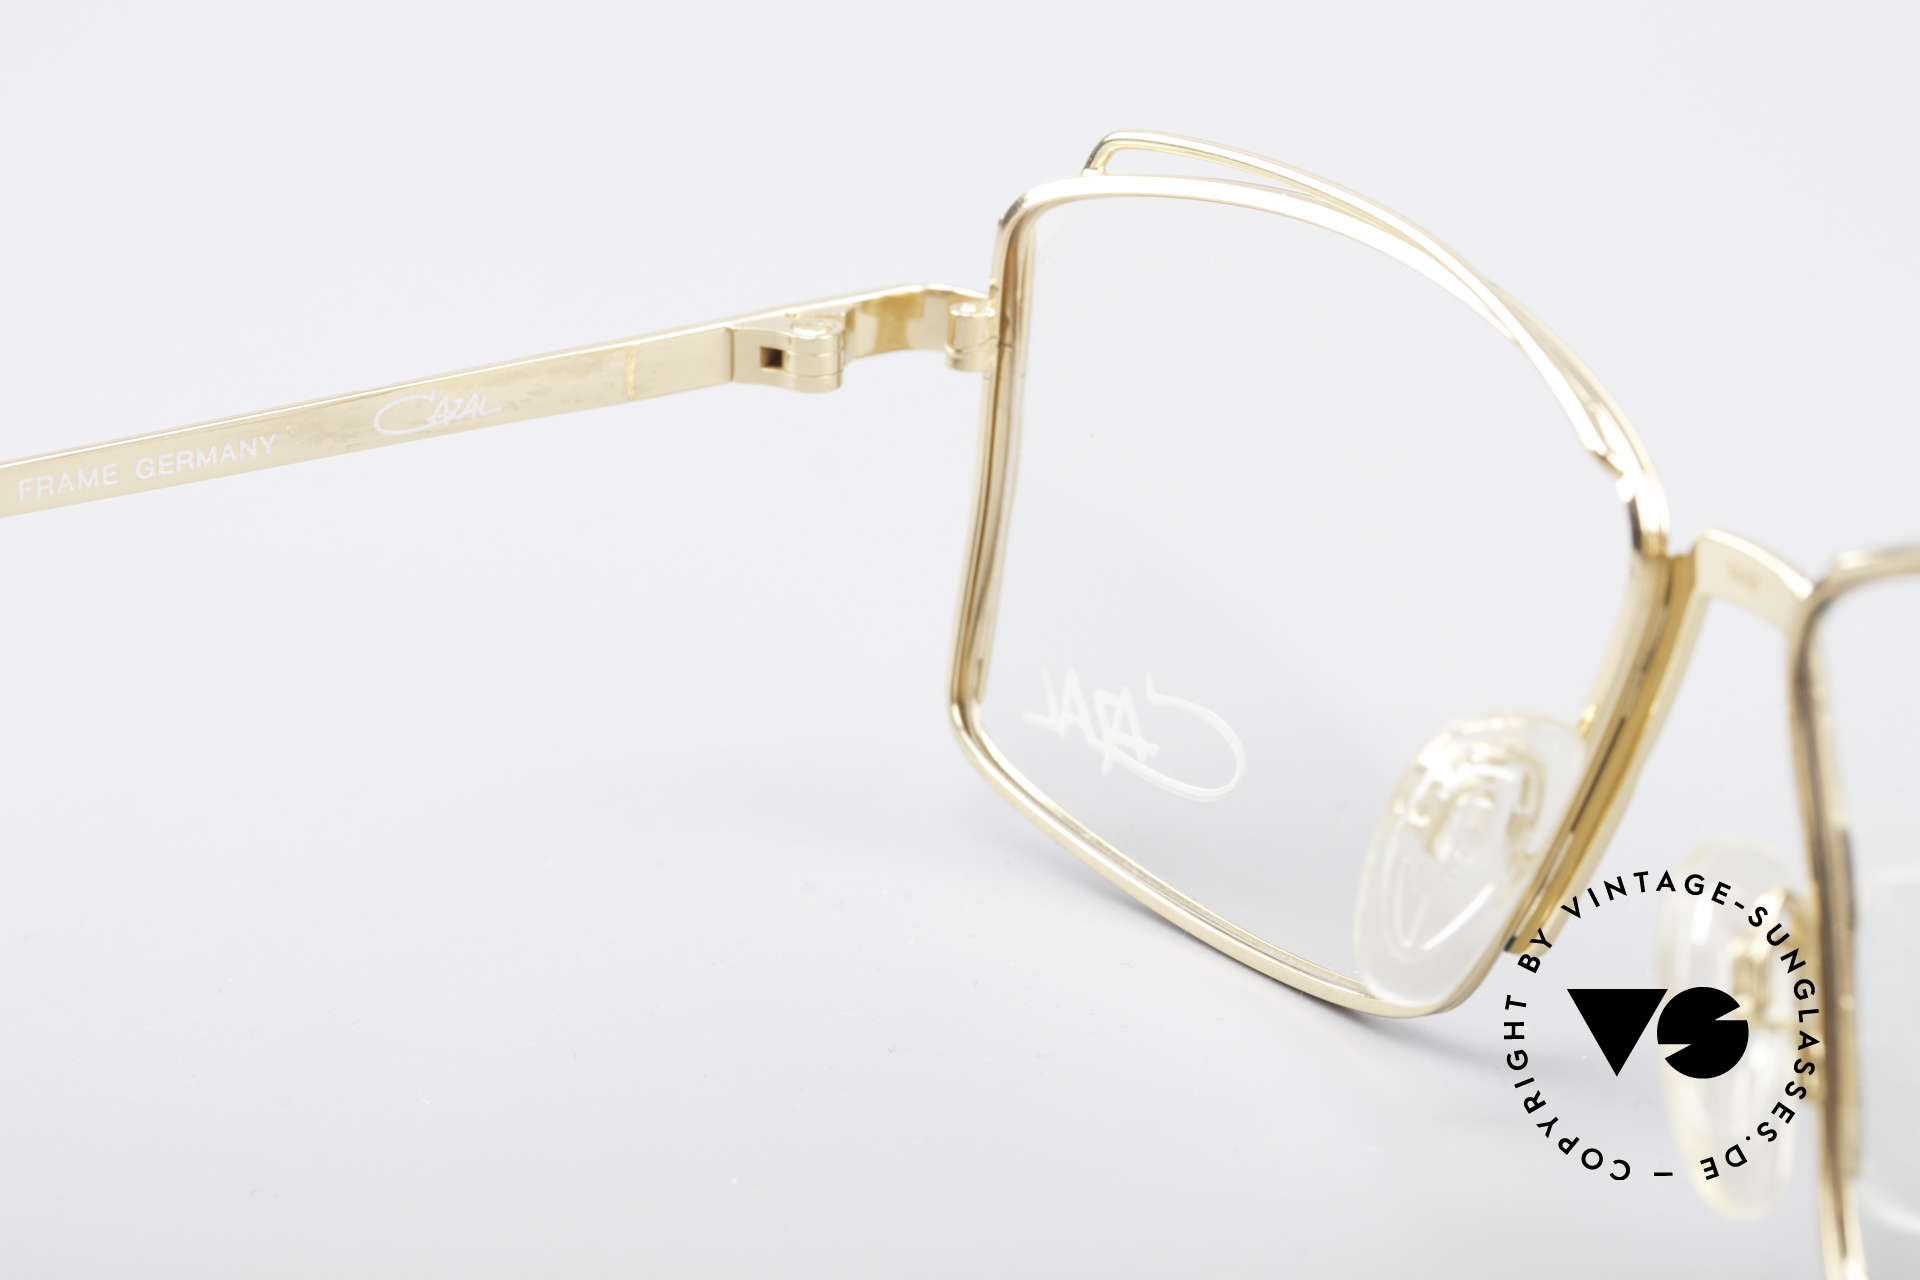 Cazal 264 No Retro True Vintage Frame, orig. demo lenses can be replaced with optical lenses, Made for Women